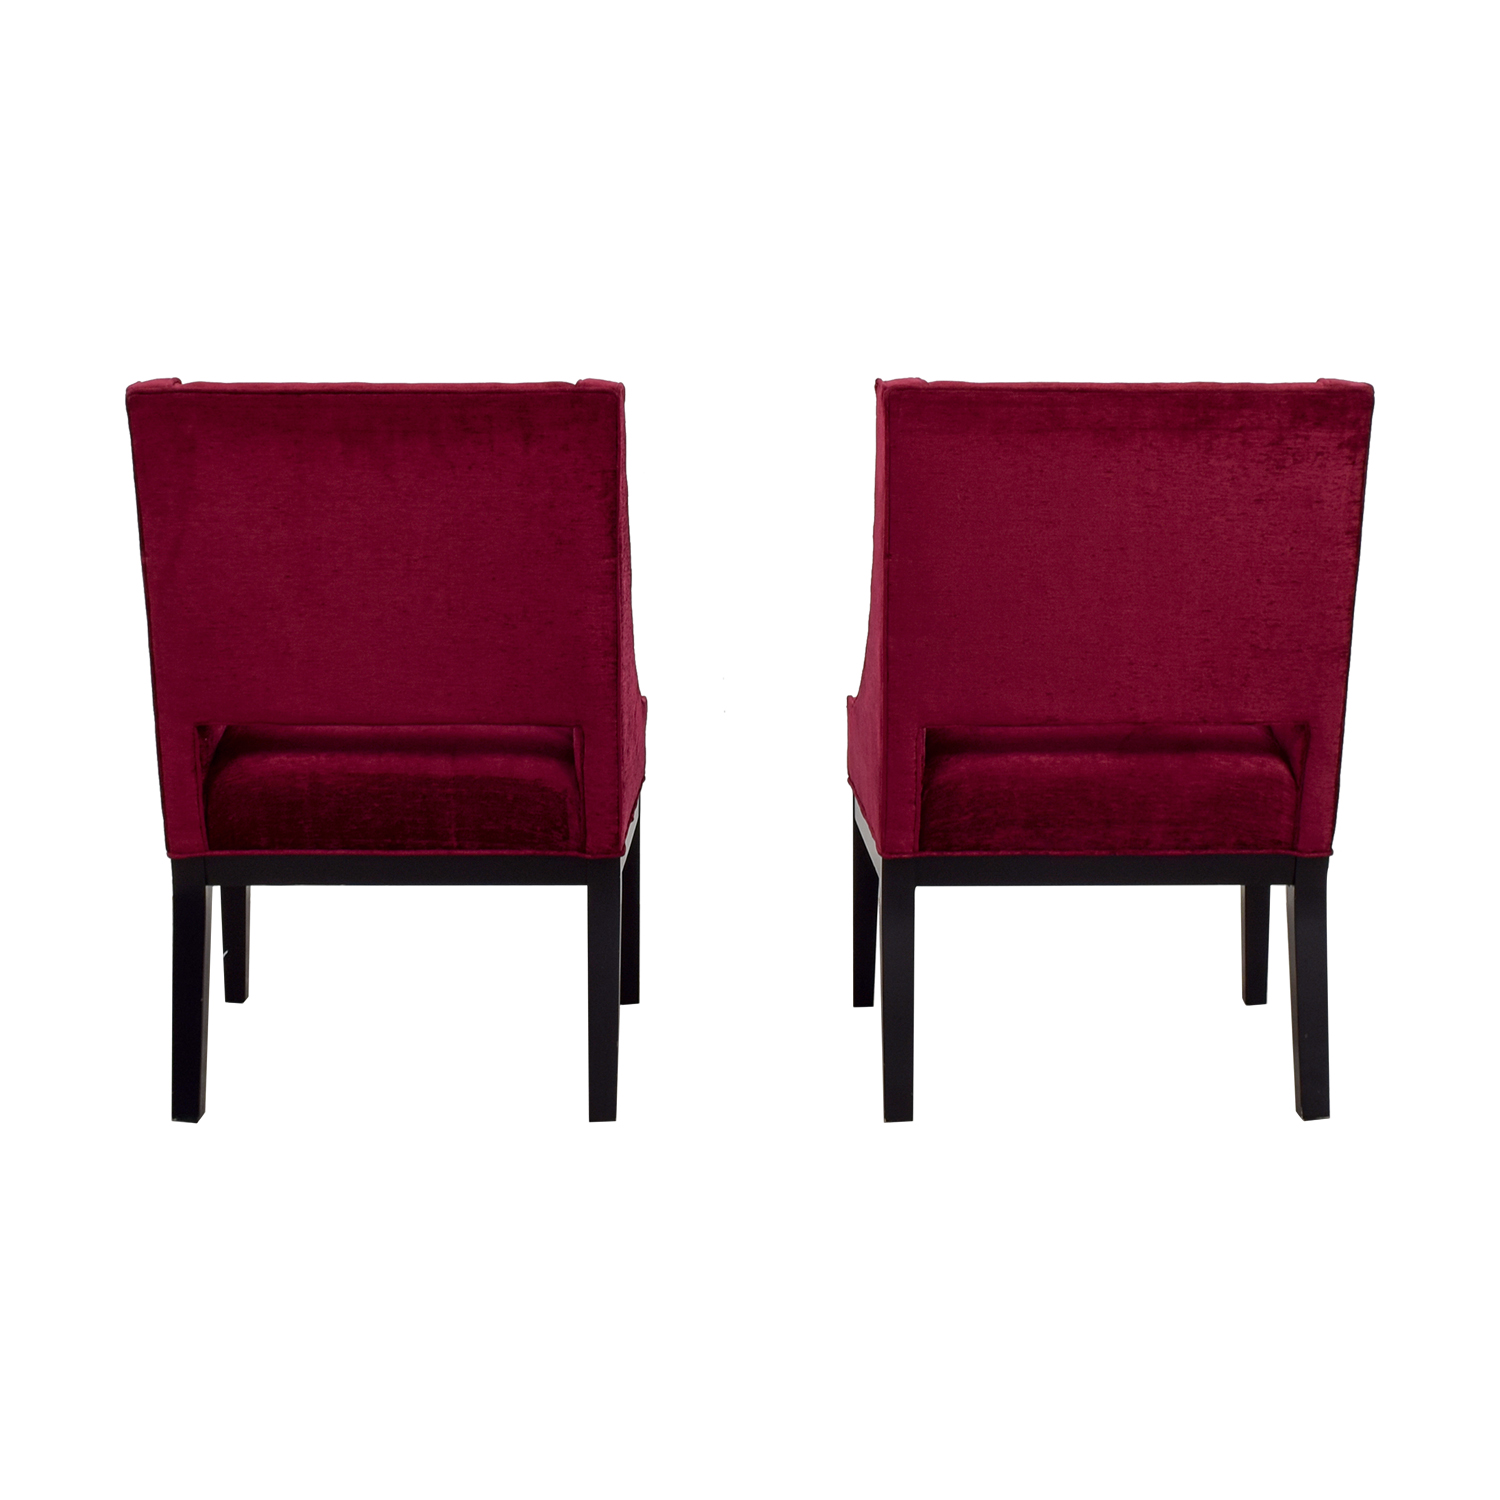 Modern Interiors Pink Upholstered Accent Chairs / Accent Chairs